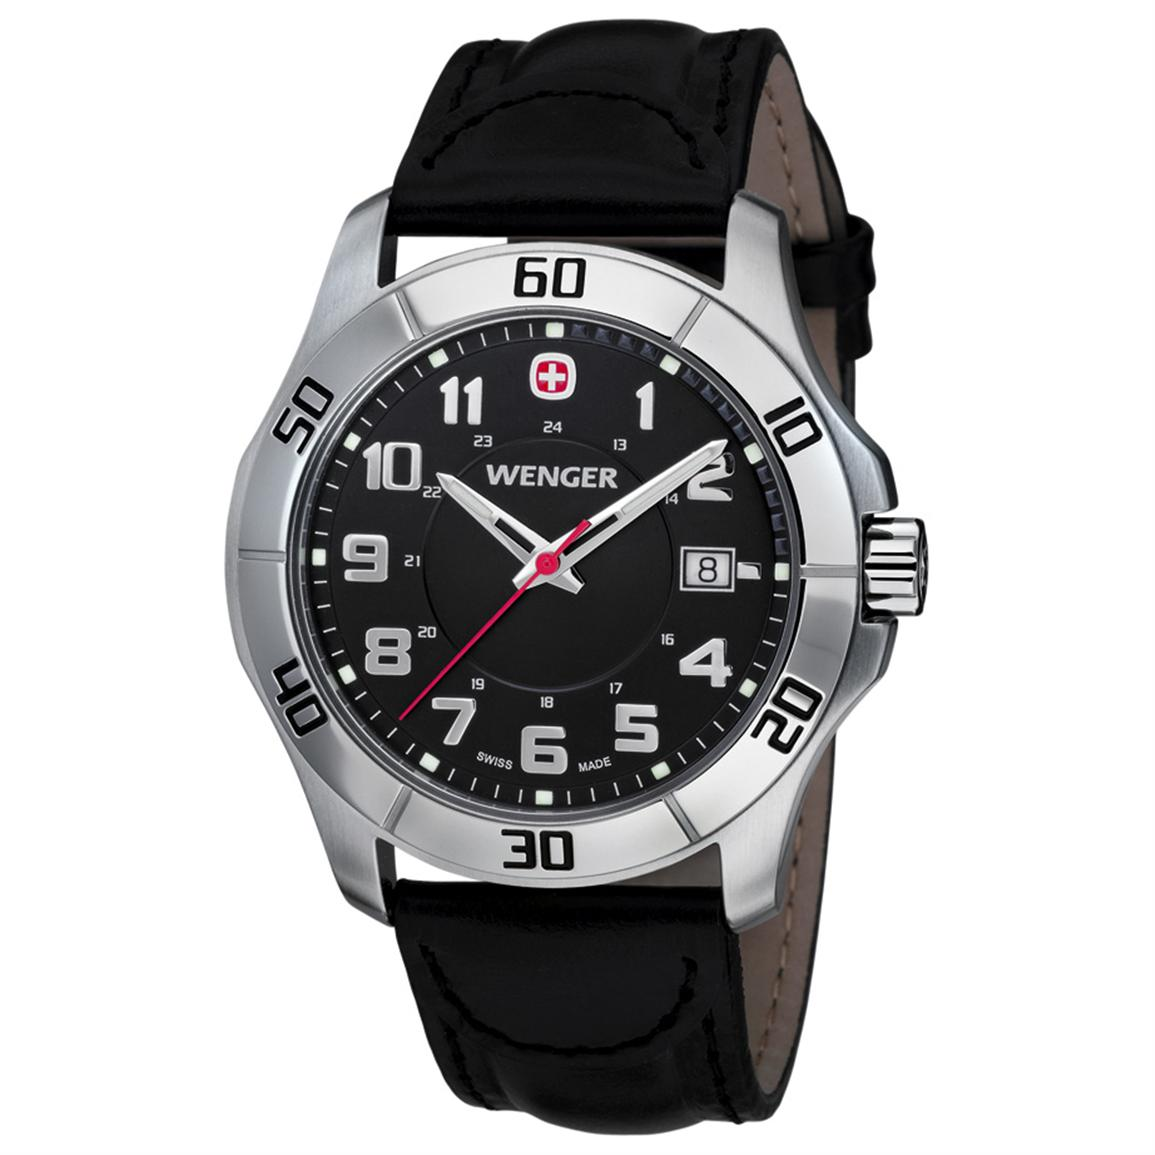 Men's Wenger® 70485 Alpine Watch with Leather Band, Black